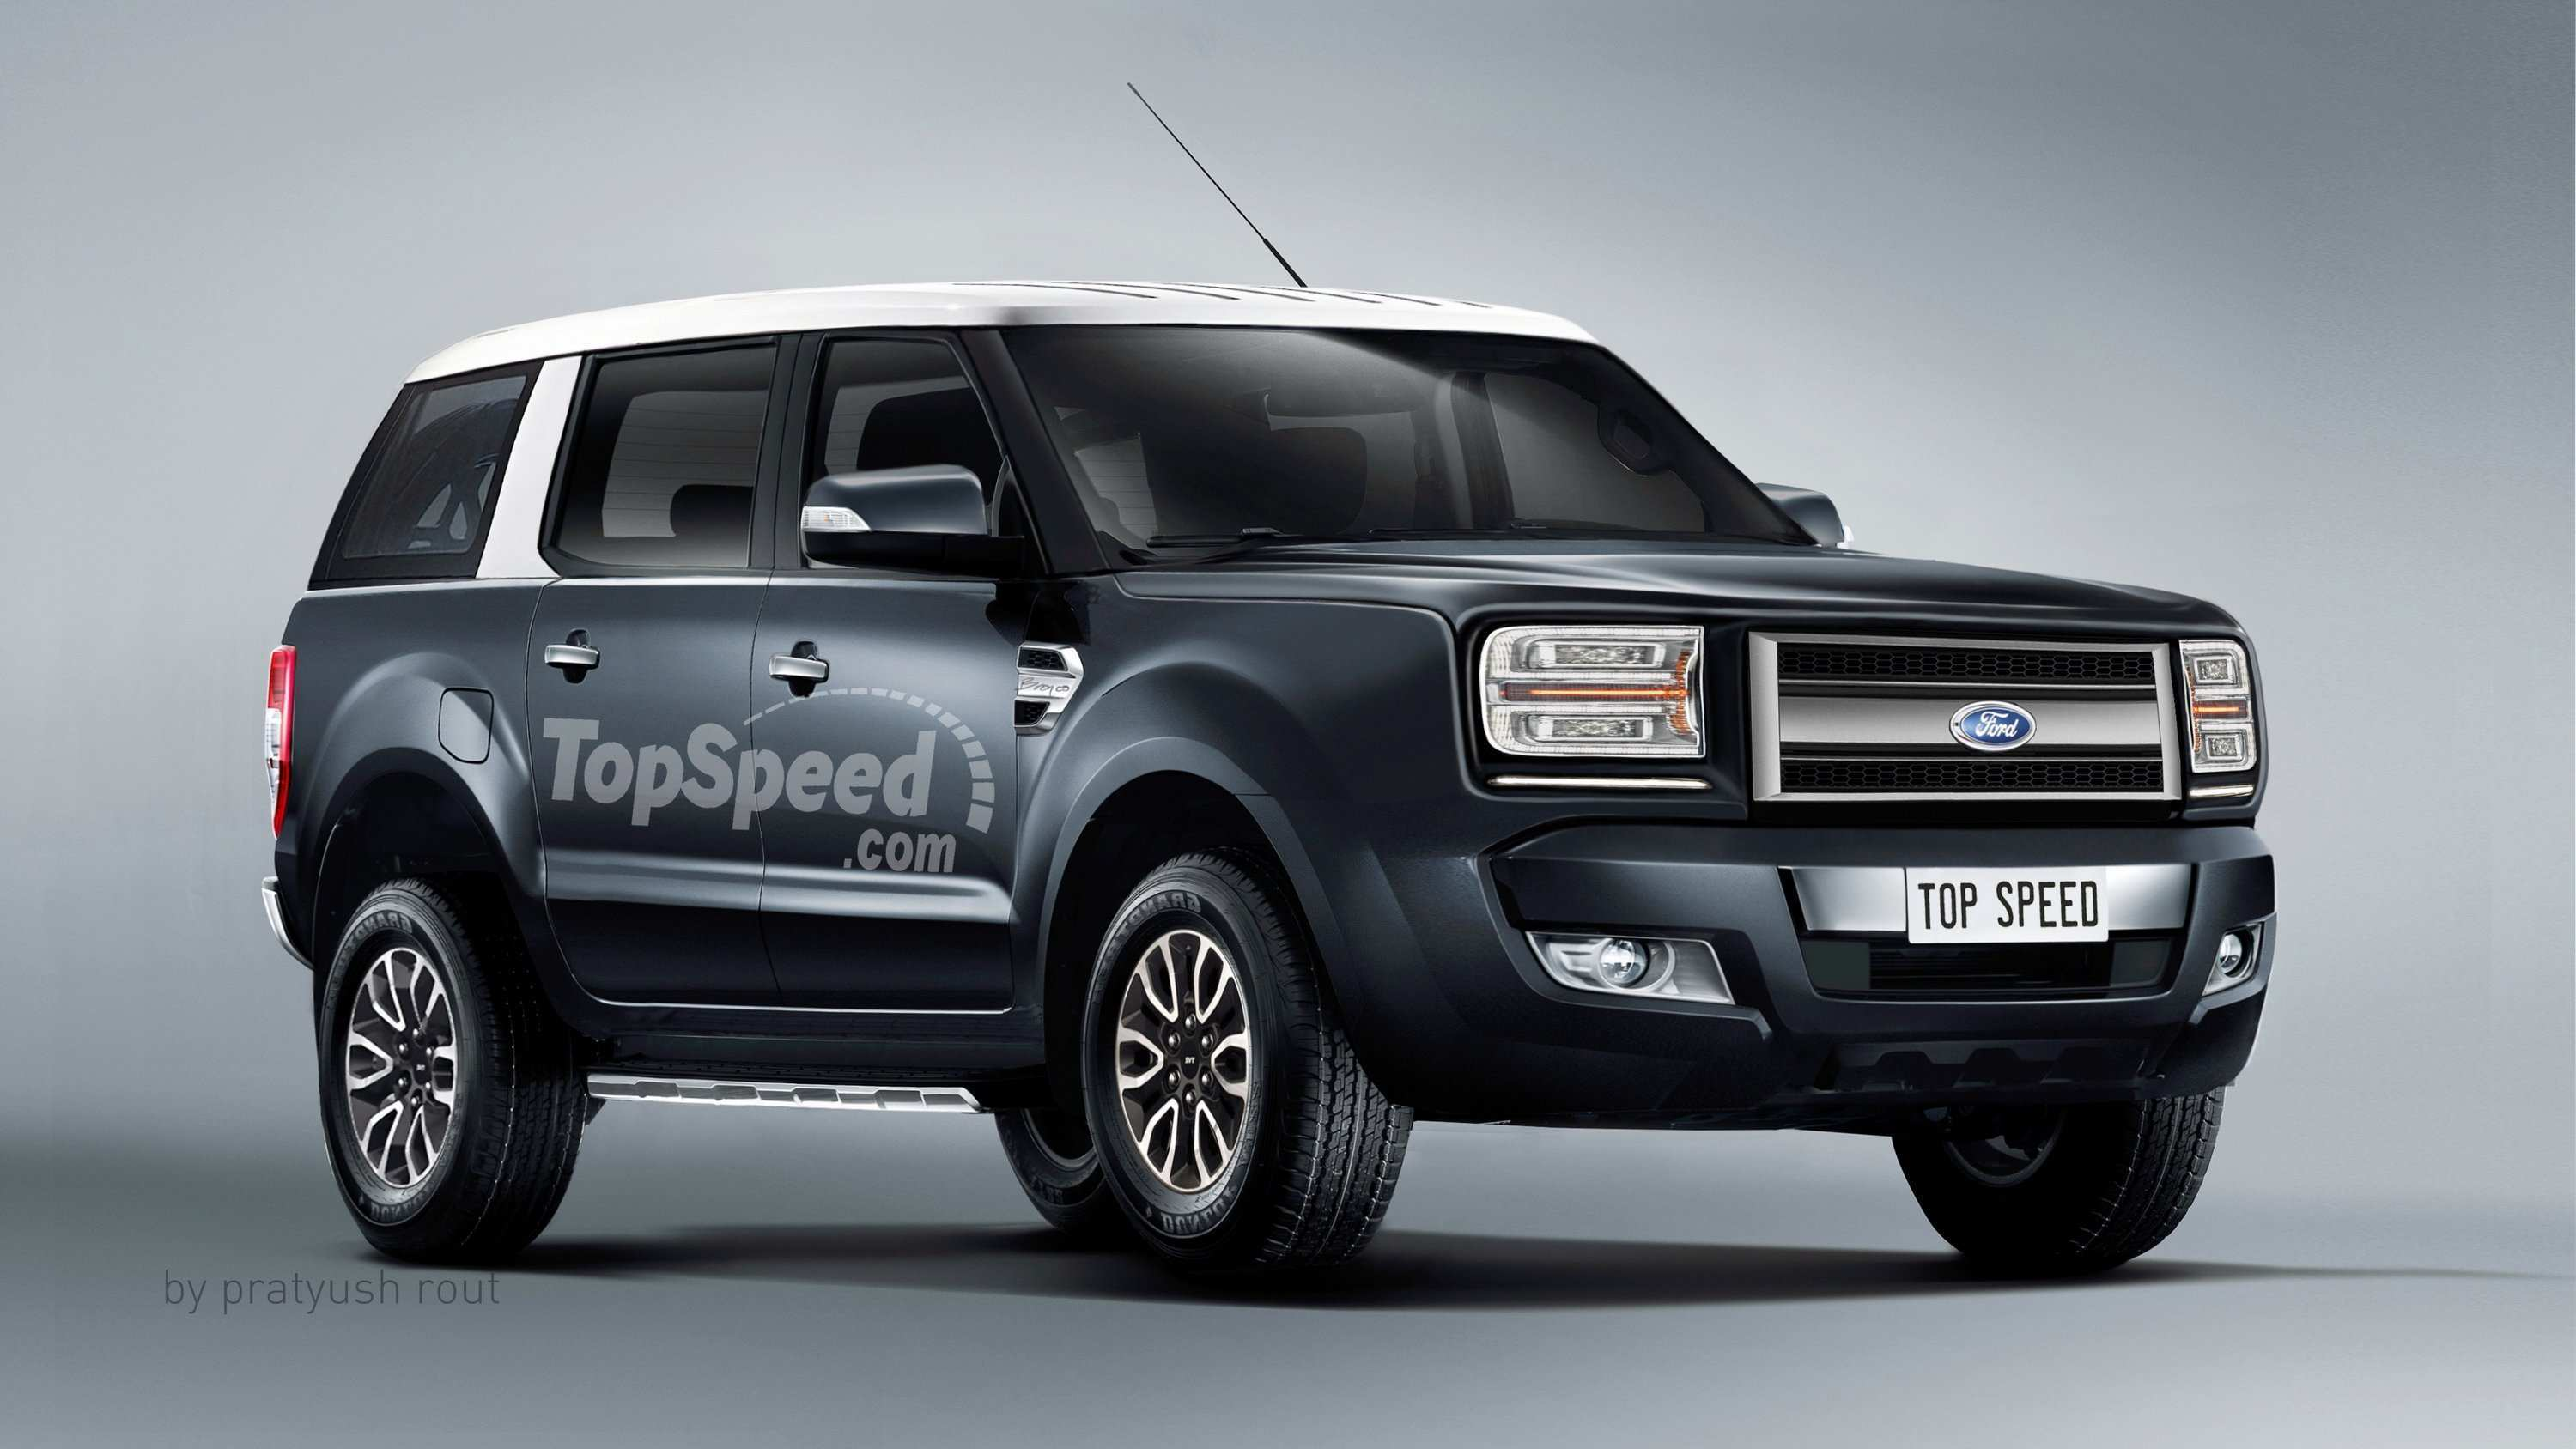 32 The Best 2020 Ford Bronco Wallpaper Review